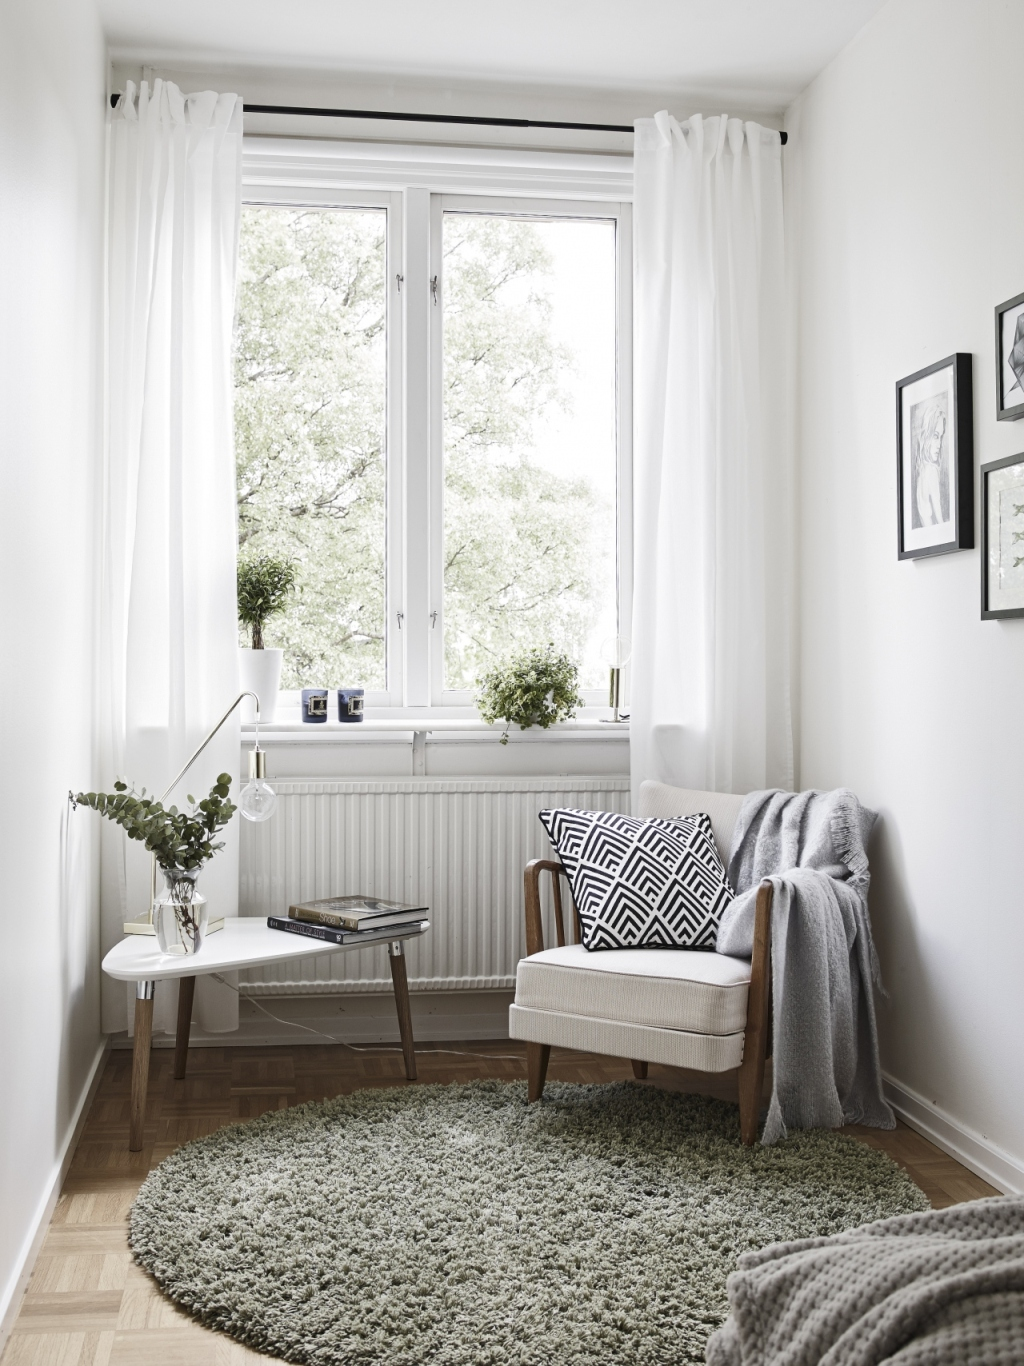 Creative scandinavian home interior combined with plants decor - Scandinavian interior design magazine ...